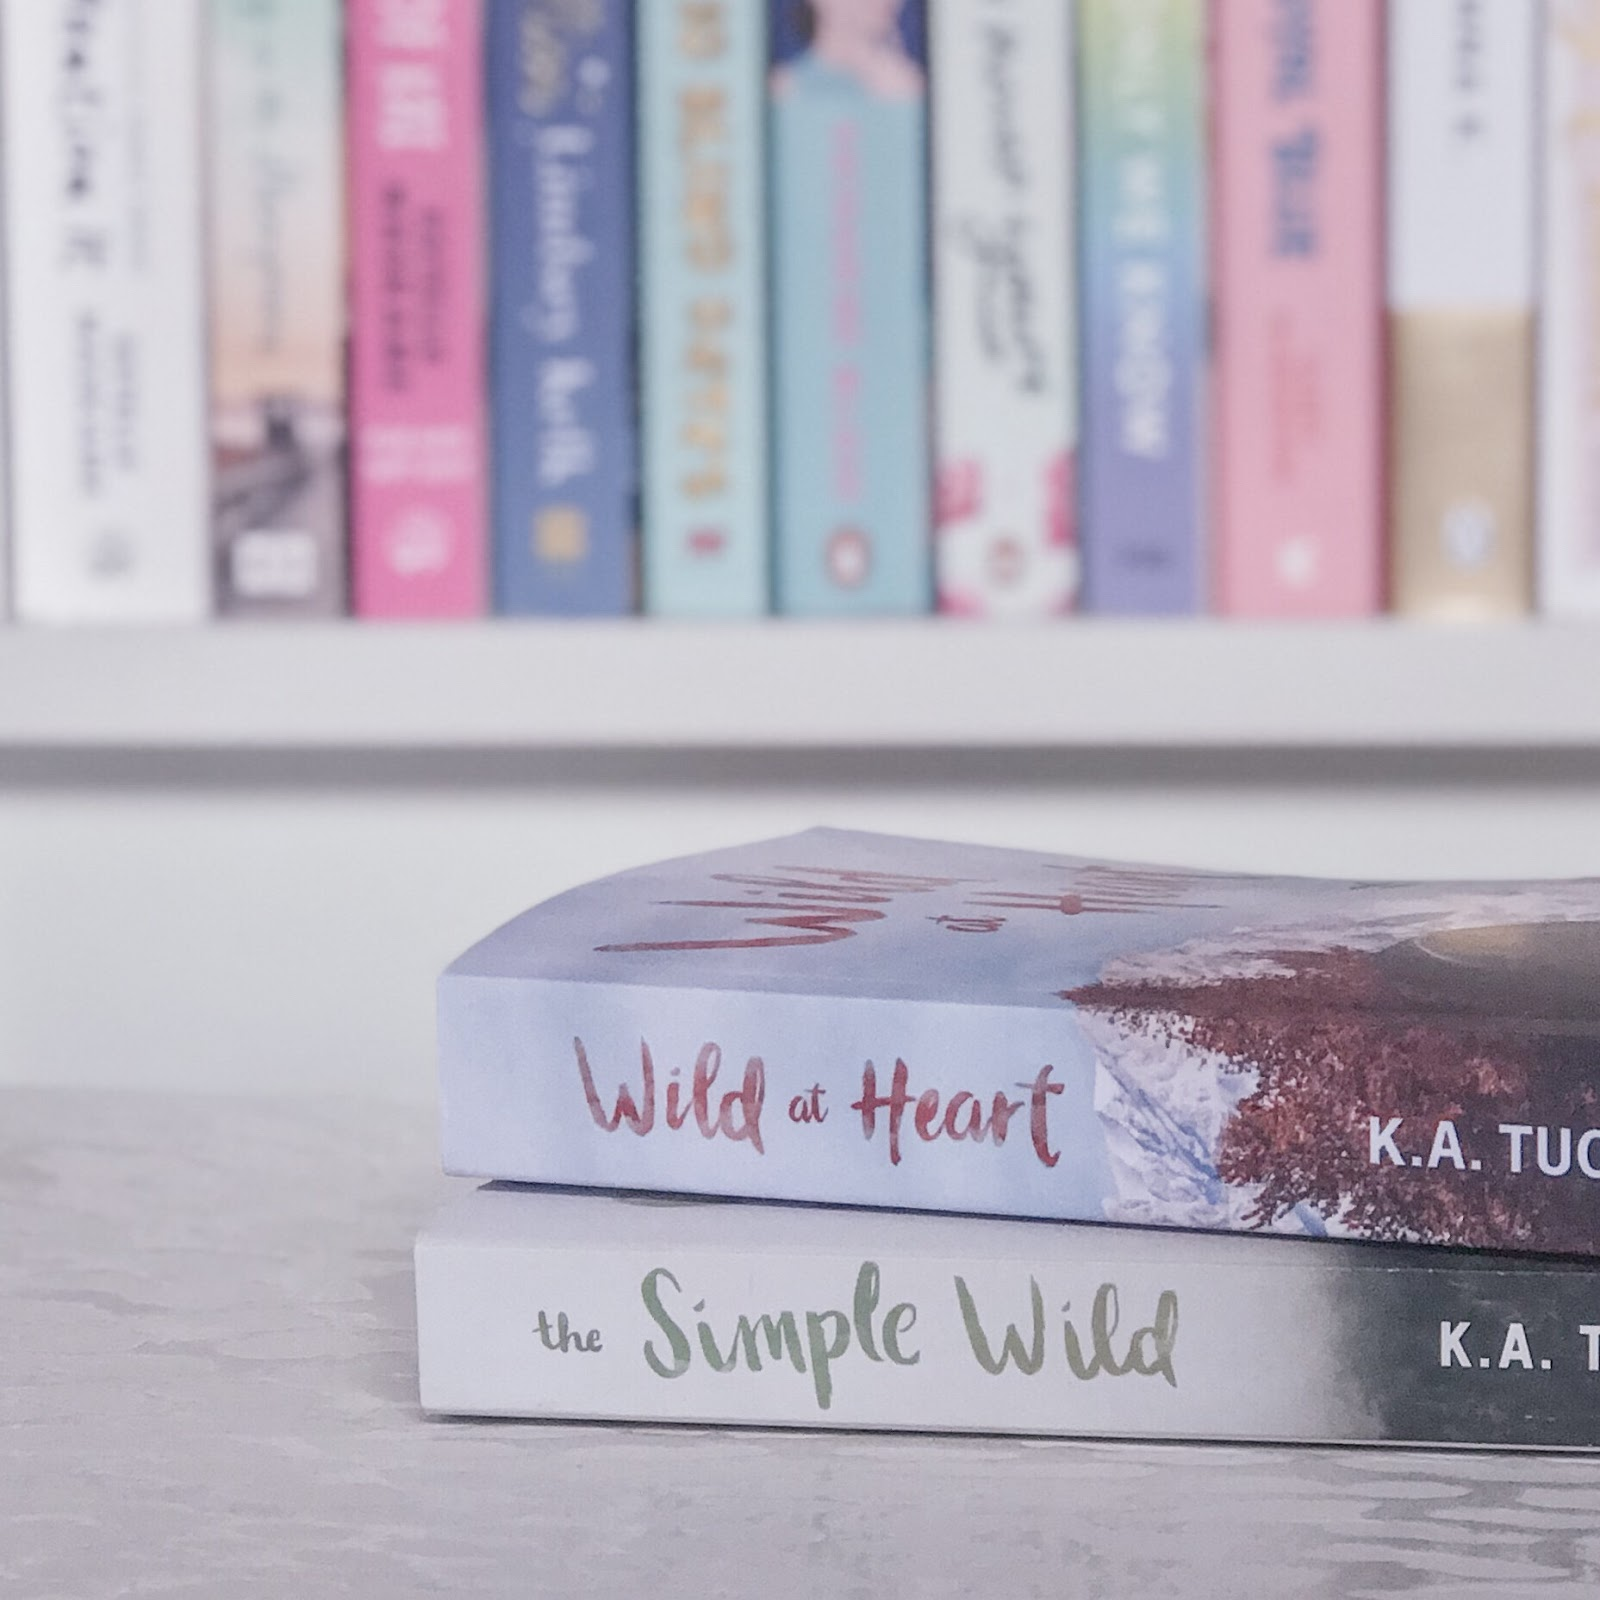 The Simple Wild Series by K.A Tucker